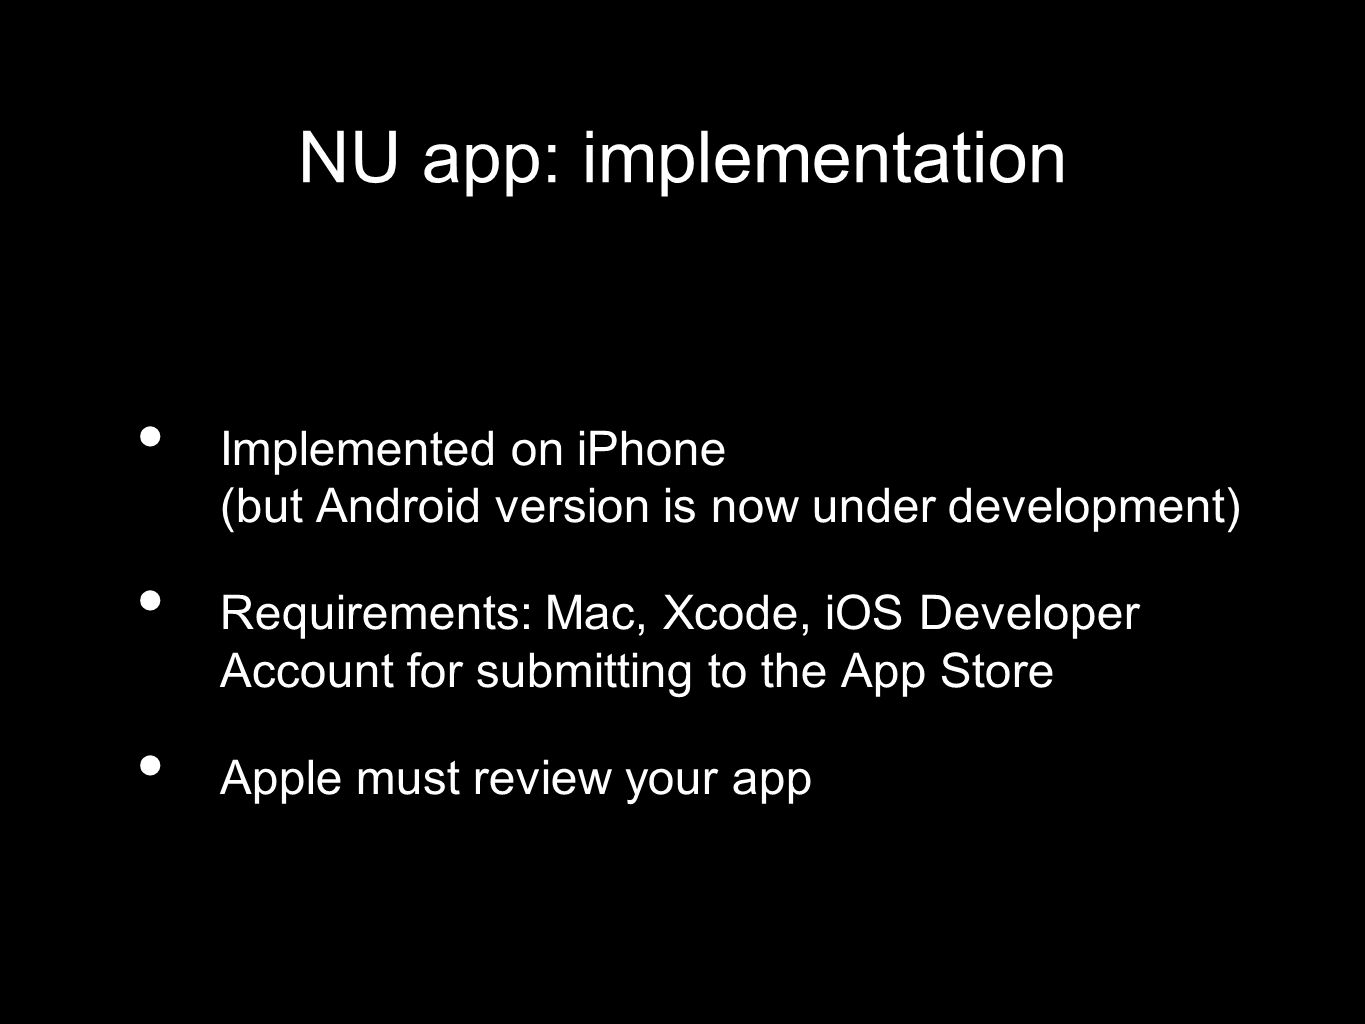 NU app: implementation Implemented on iPhone (but Android version is now under development) Requirements: Mac, Xcode, iOS Developer Account for submitting to the App Store Apple must review your app